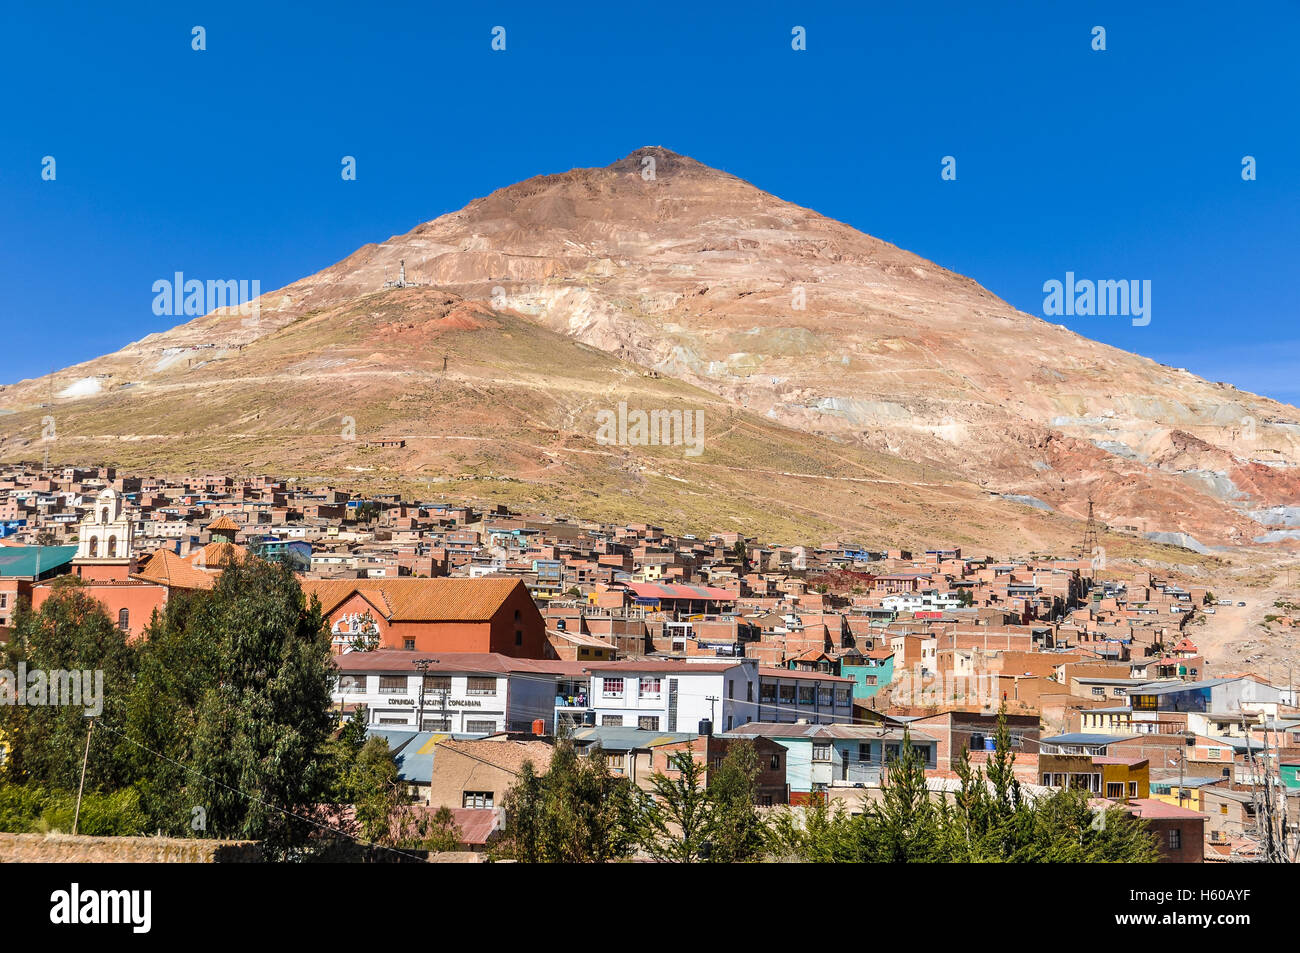 Huayna Potosi mountains famous for its silver mines in Bolivia - Stock Image